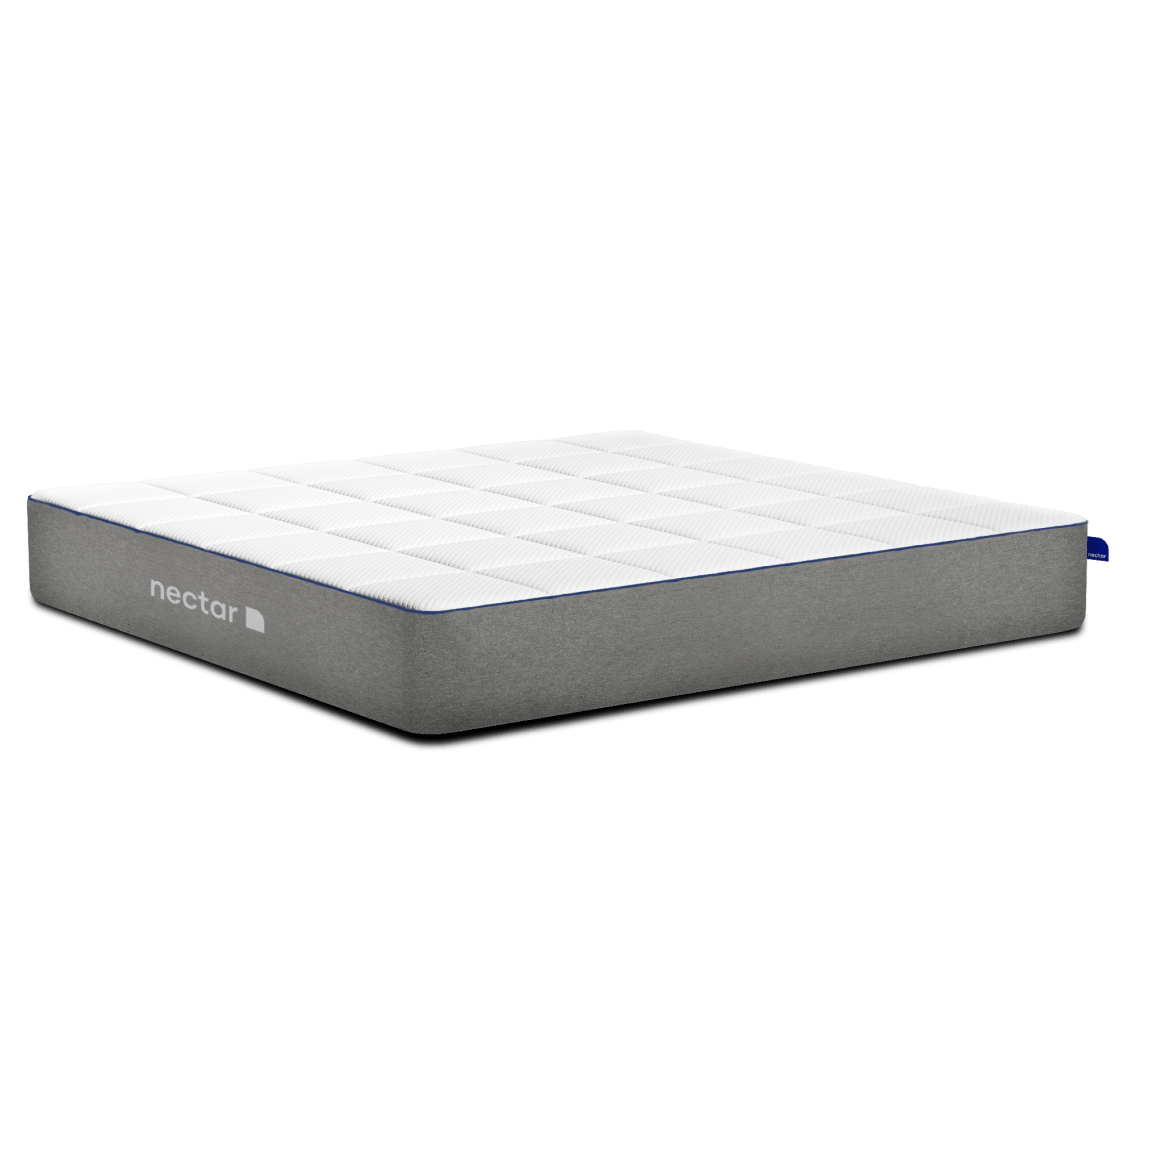 hot sale online 0e18c 3d6ad Nectar Memory Foam Mattress – High Fashion Home